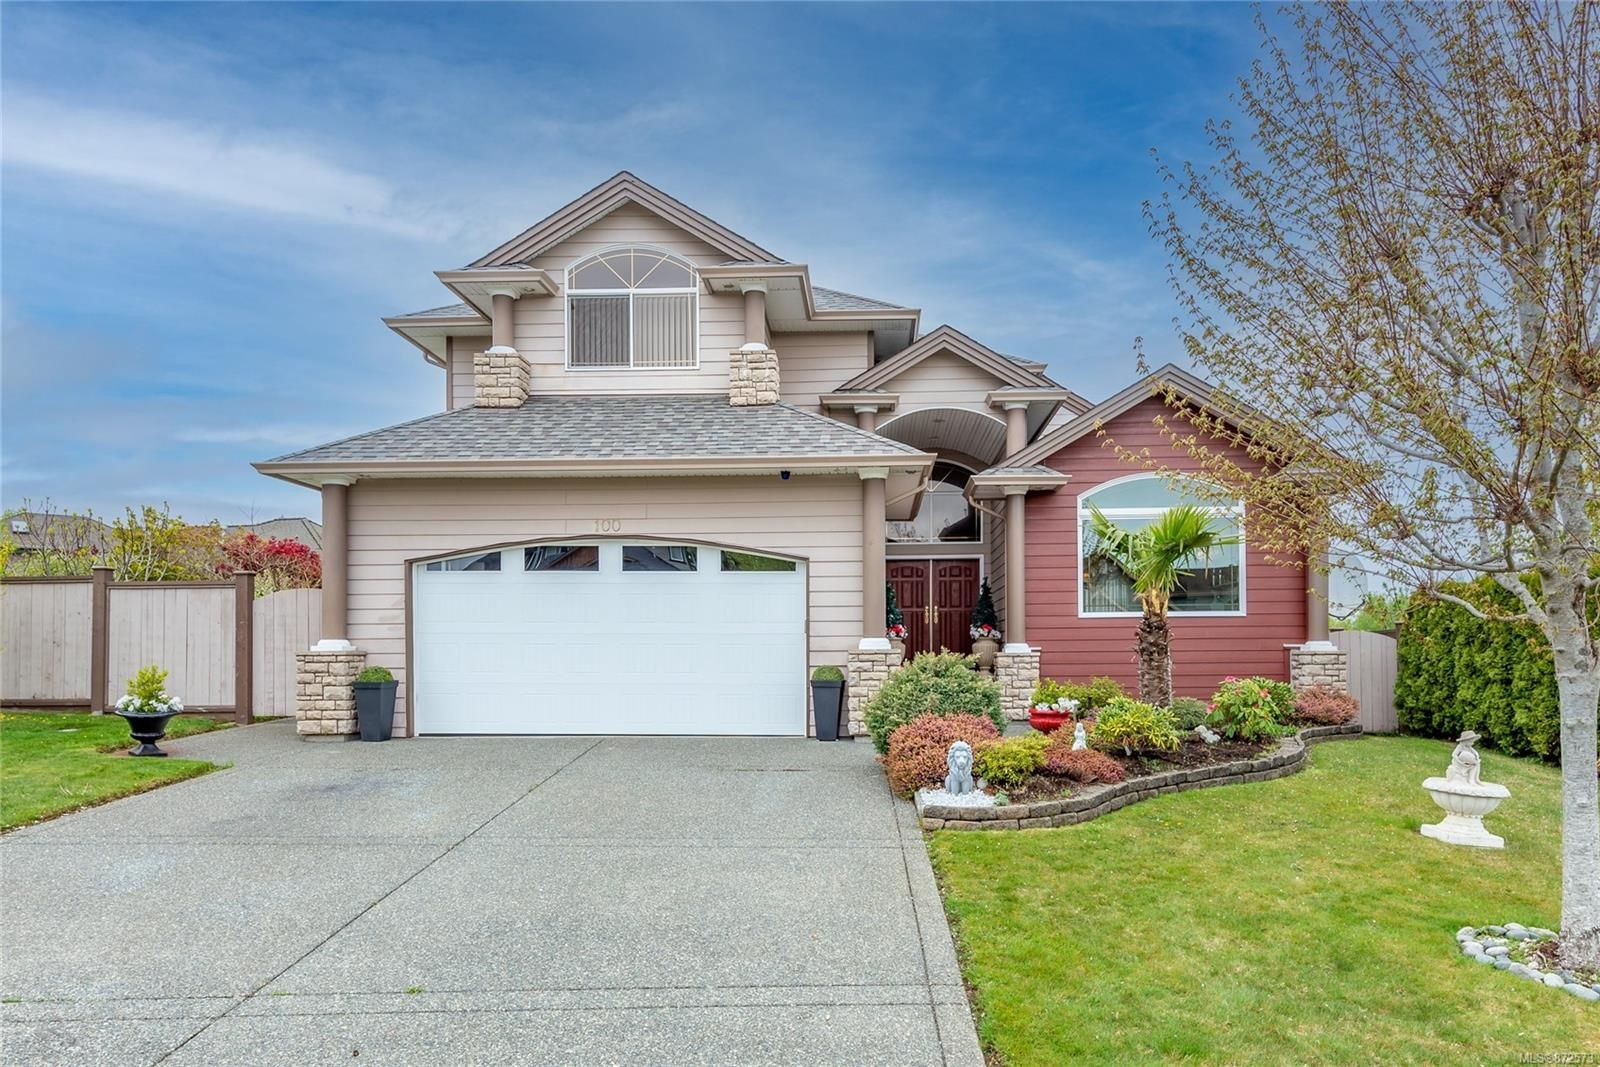 Main Photo: 100 Oregon Rd in : CR Willow Point House for sale (Campbell River)  : MLS®# 872573